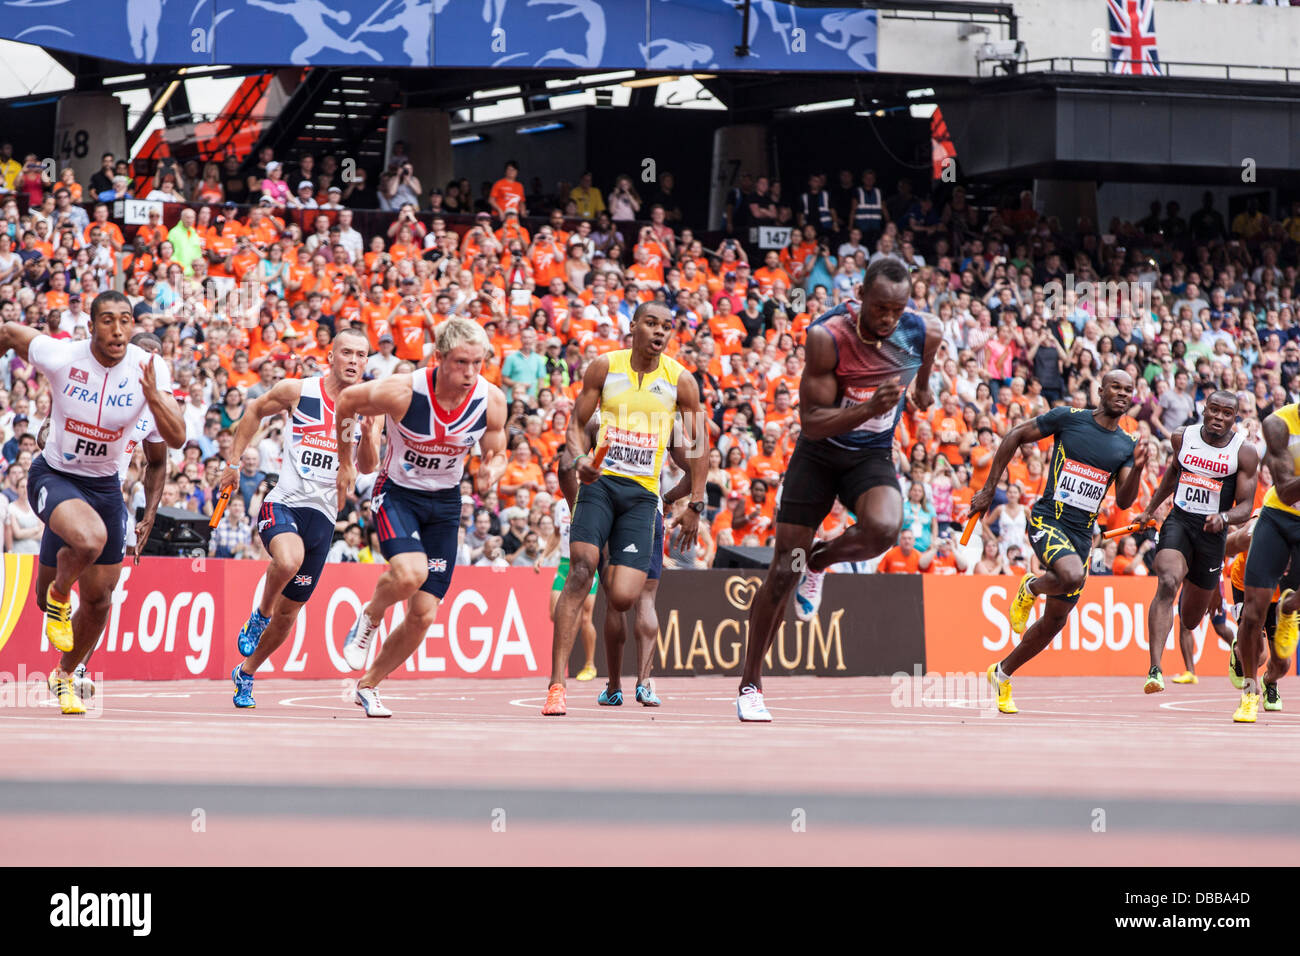 London, UK. 27th July, 2013. Olympic Stadium, Anniversary Games British Athletics in London. Usain Bolt (right) - Stock Image